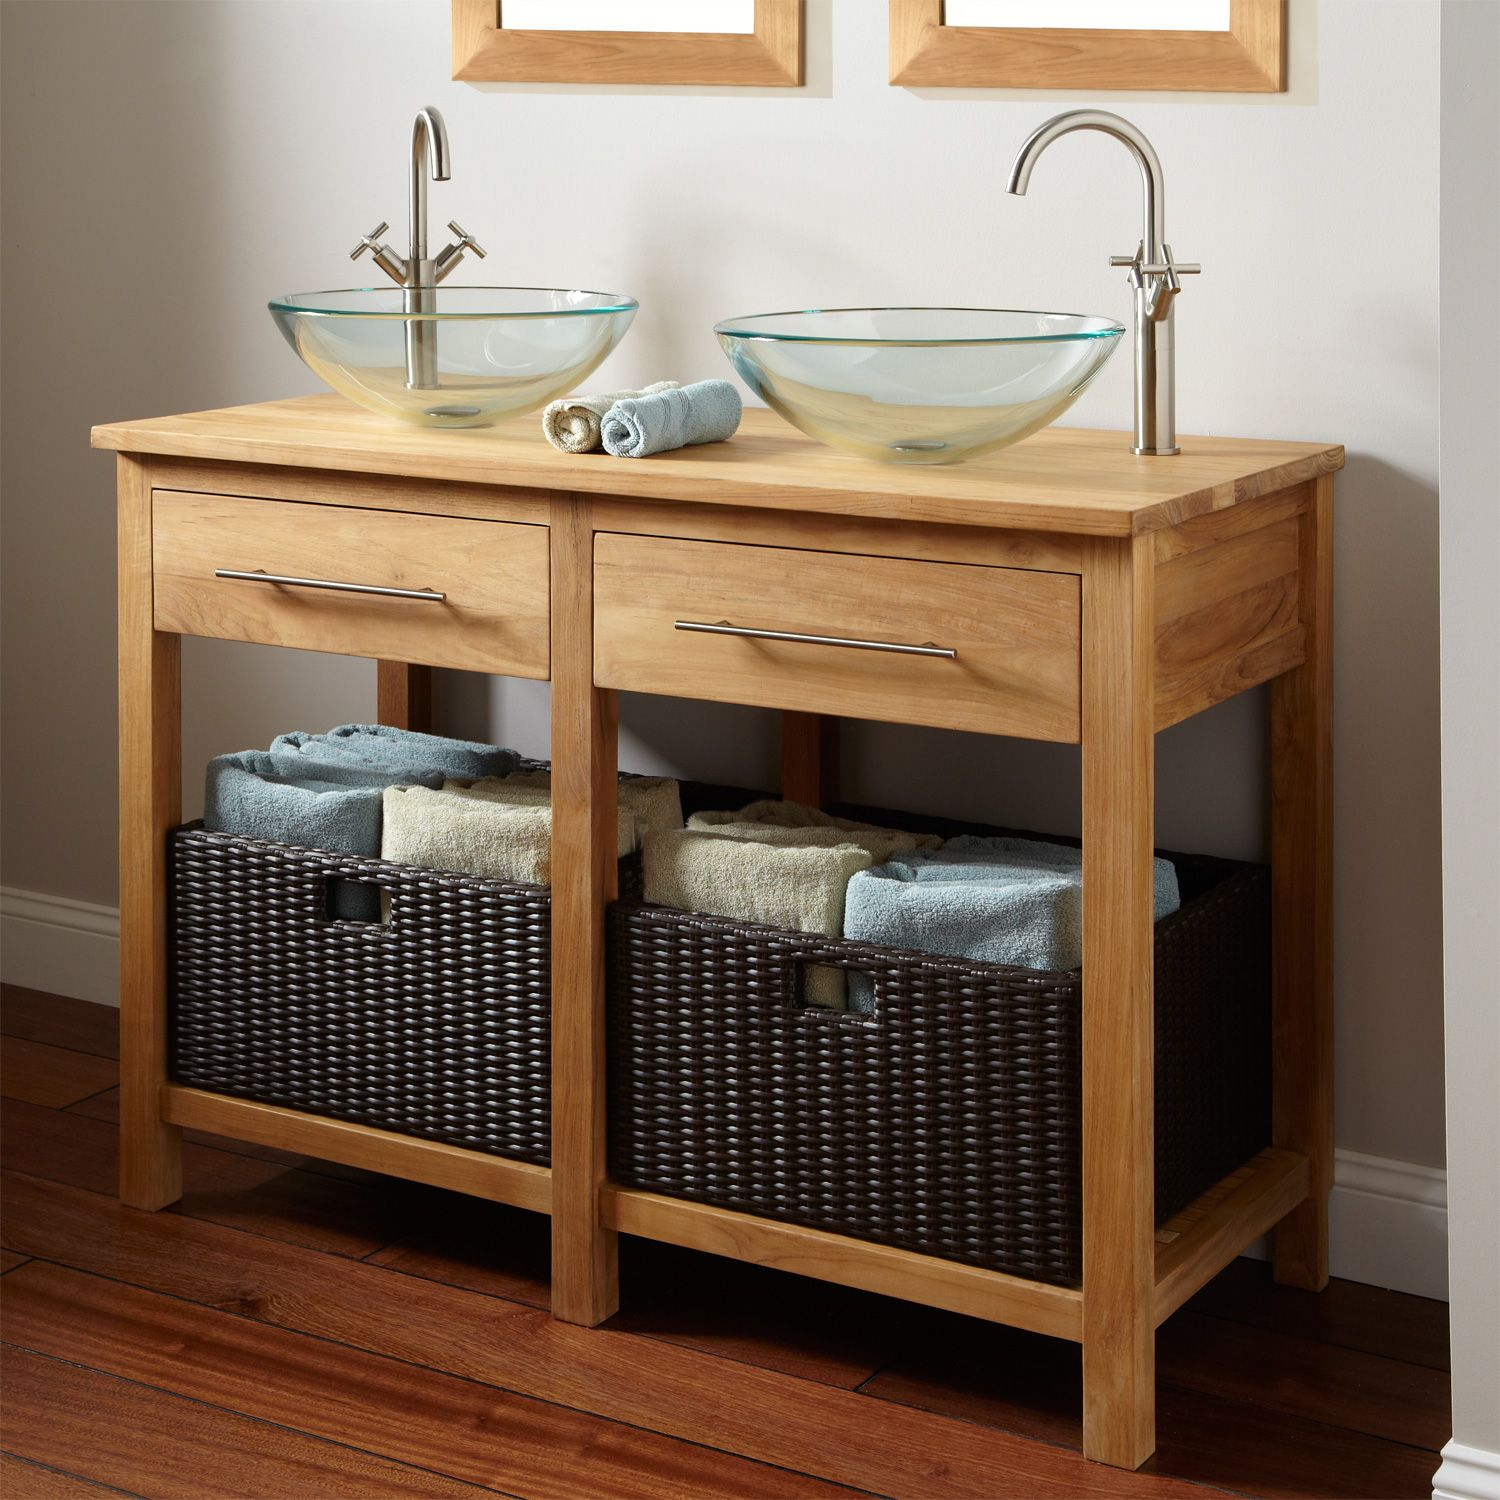 diy bathroom vanity u2013 save money by making your own